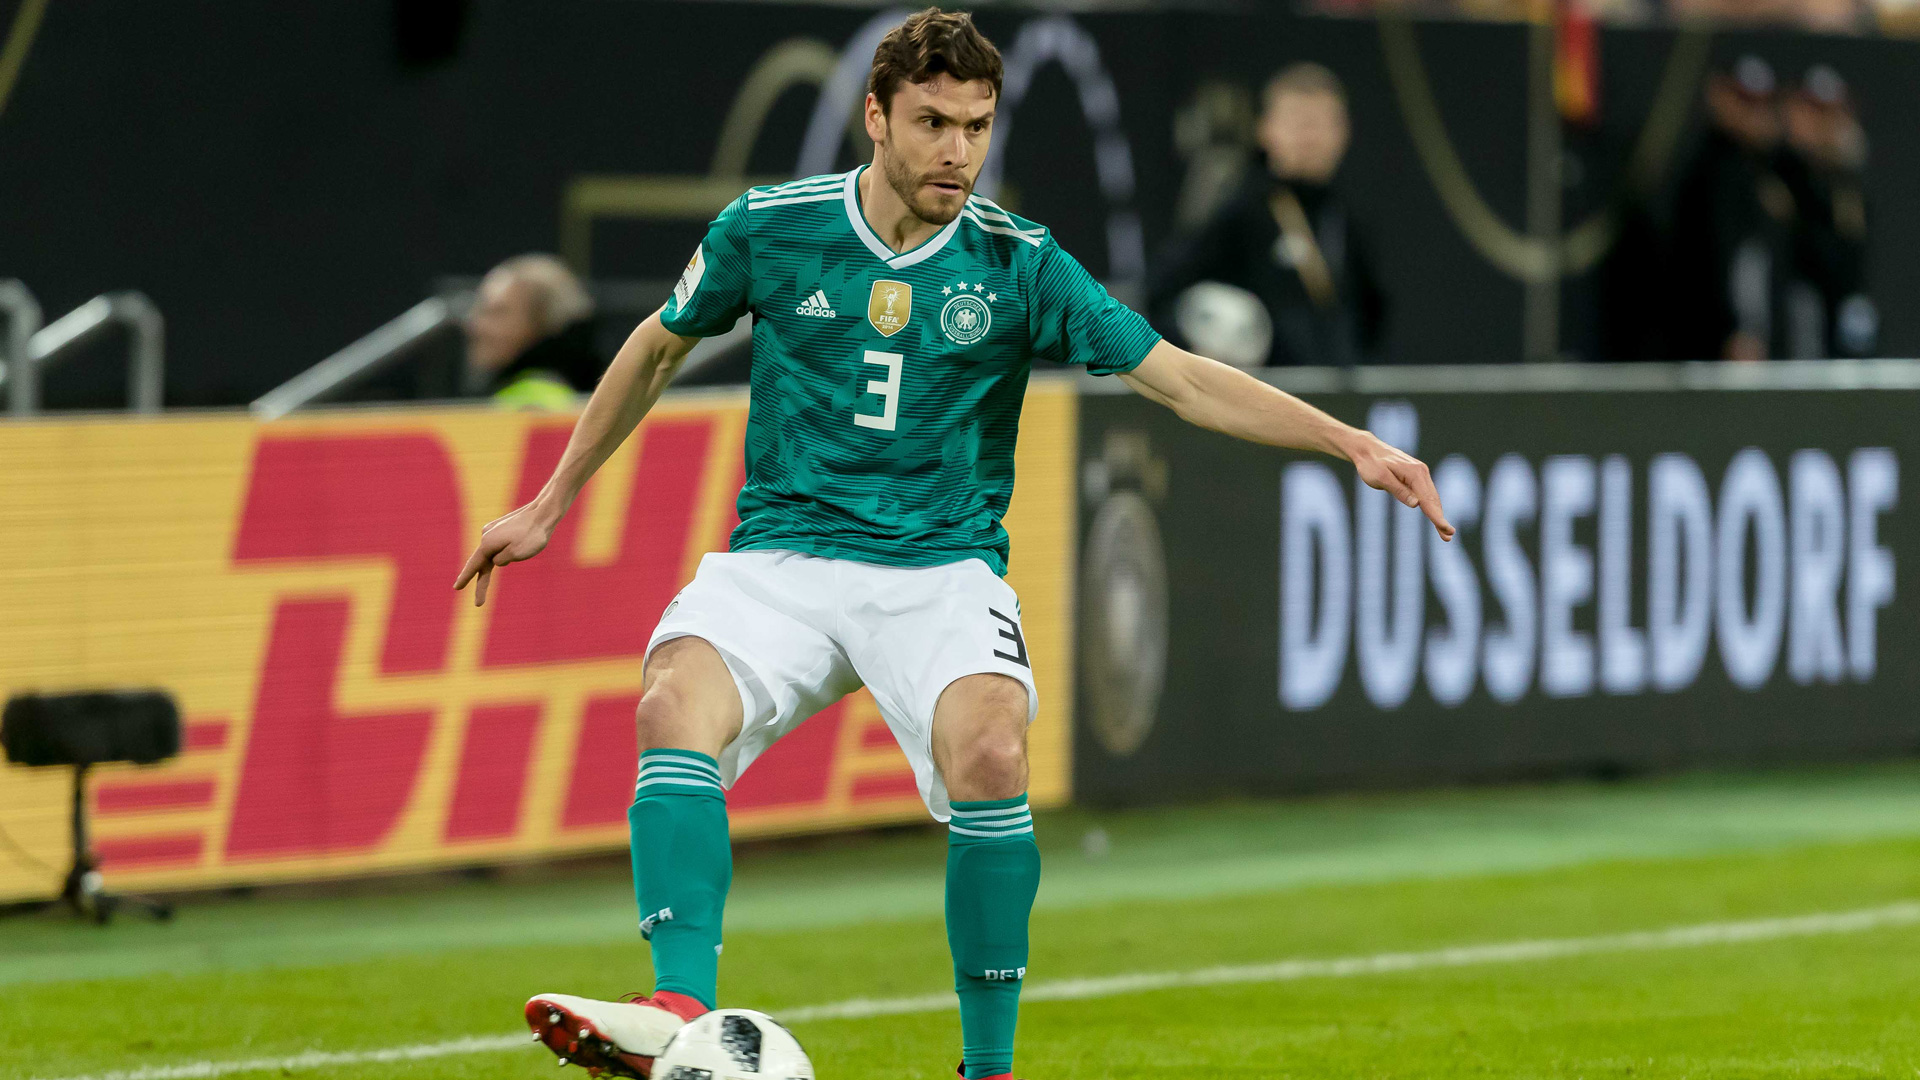 Germania parte male, Messico vince 1-0